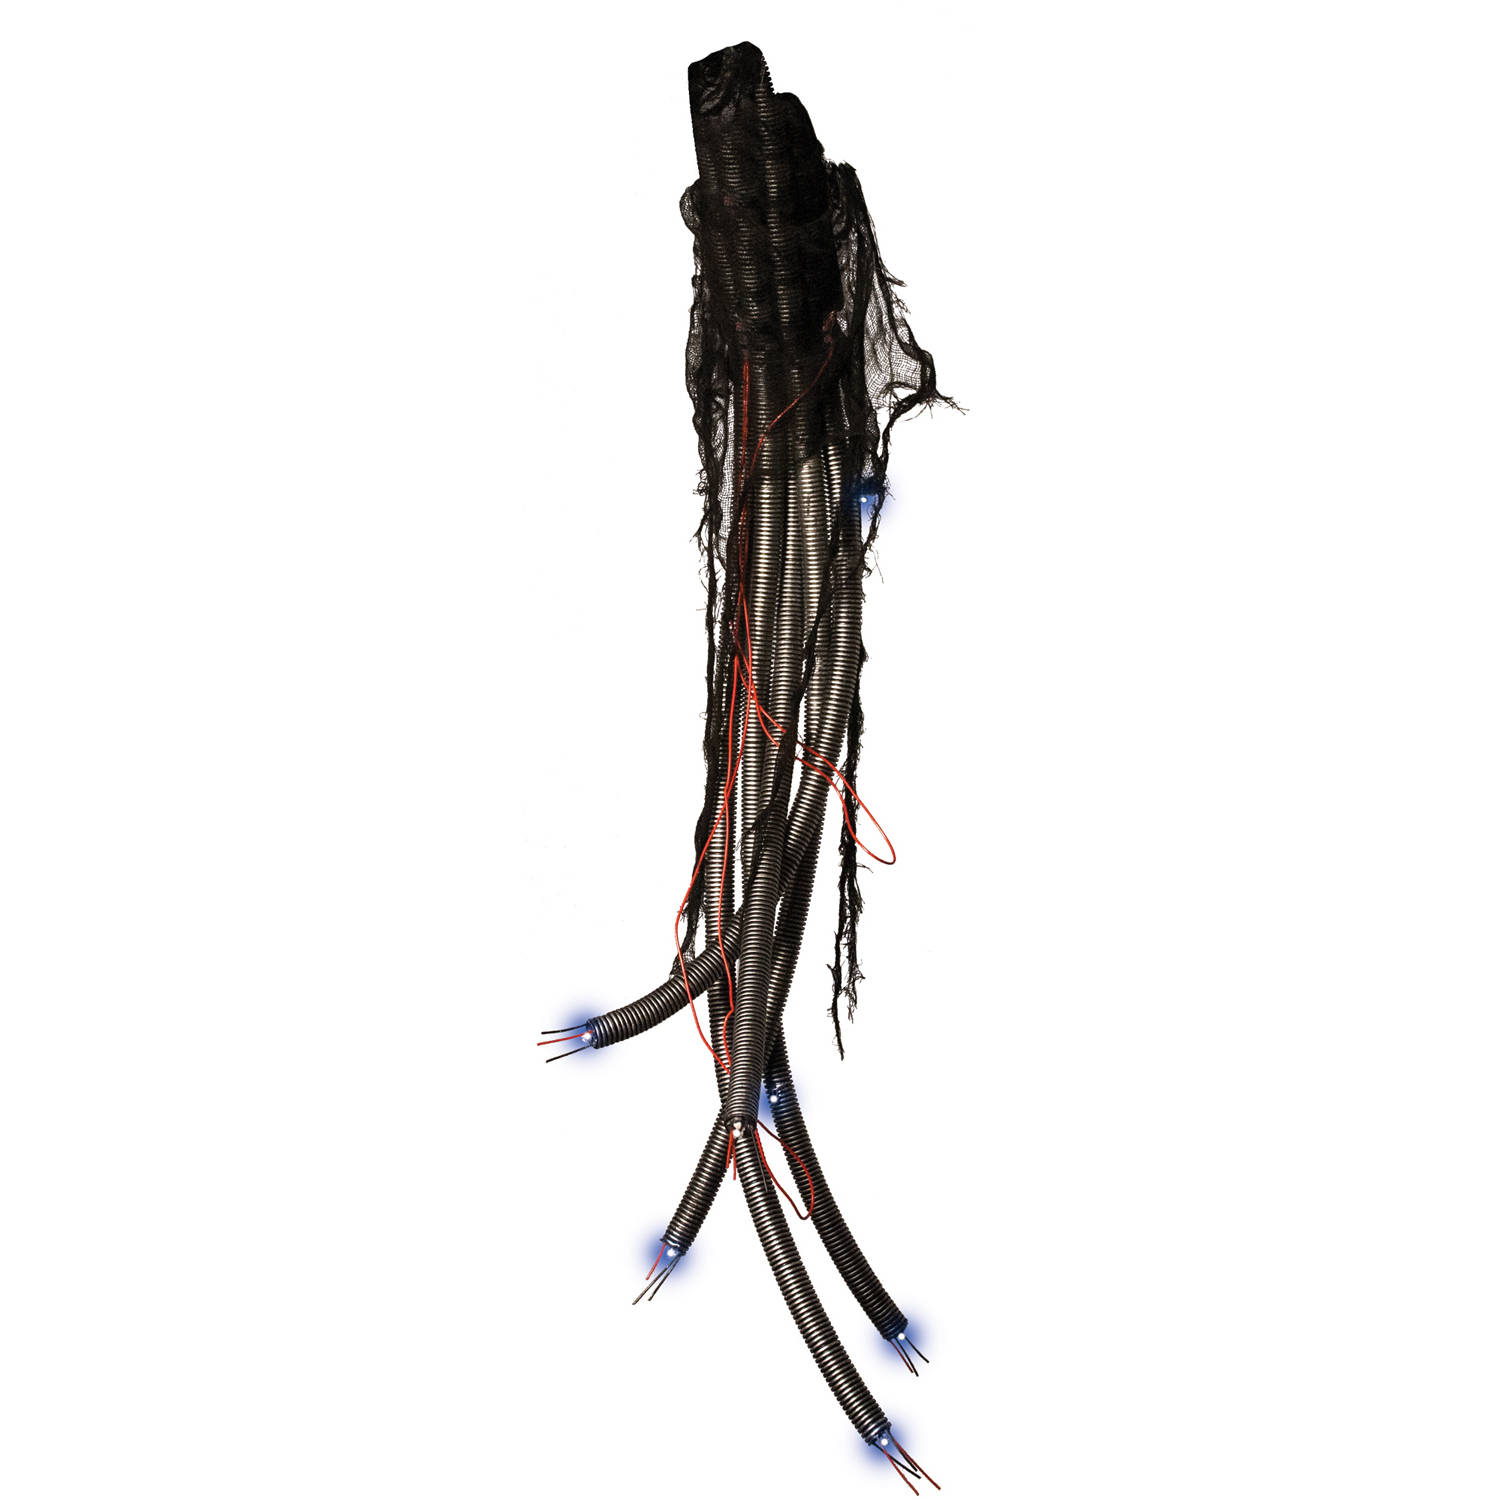 animated live wires prop halloween decoration